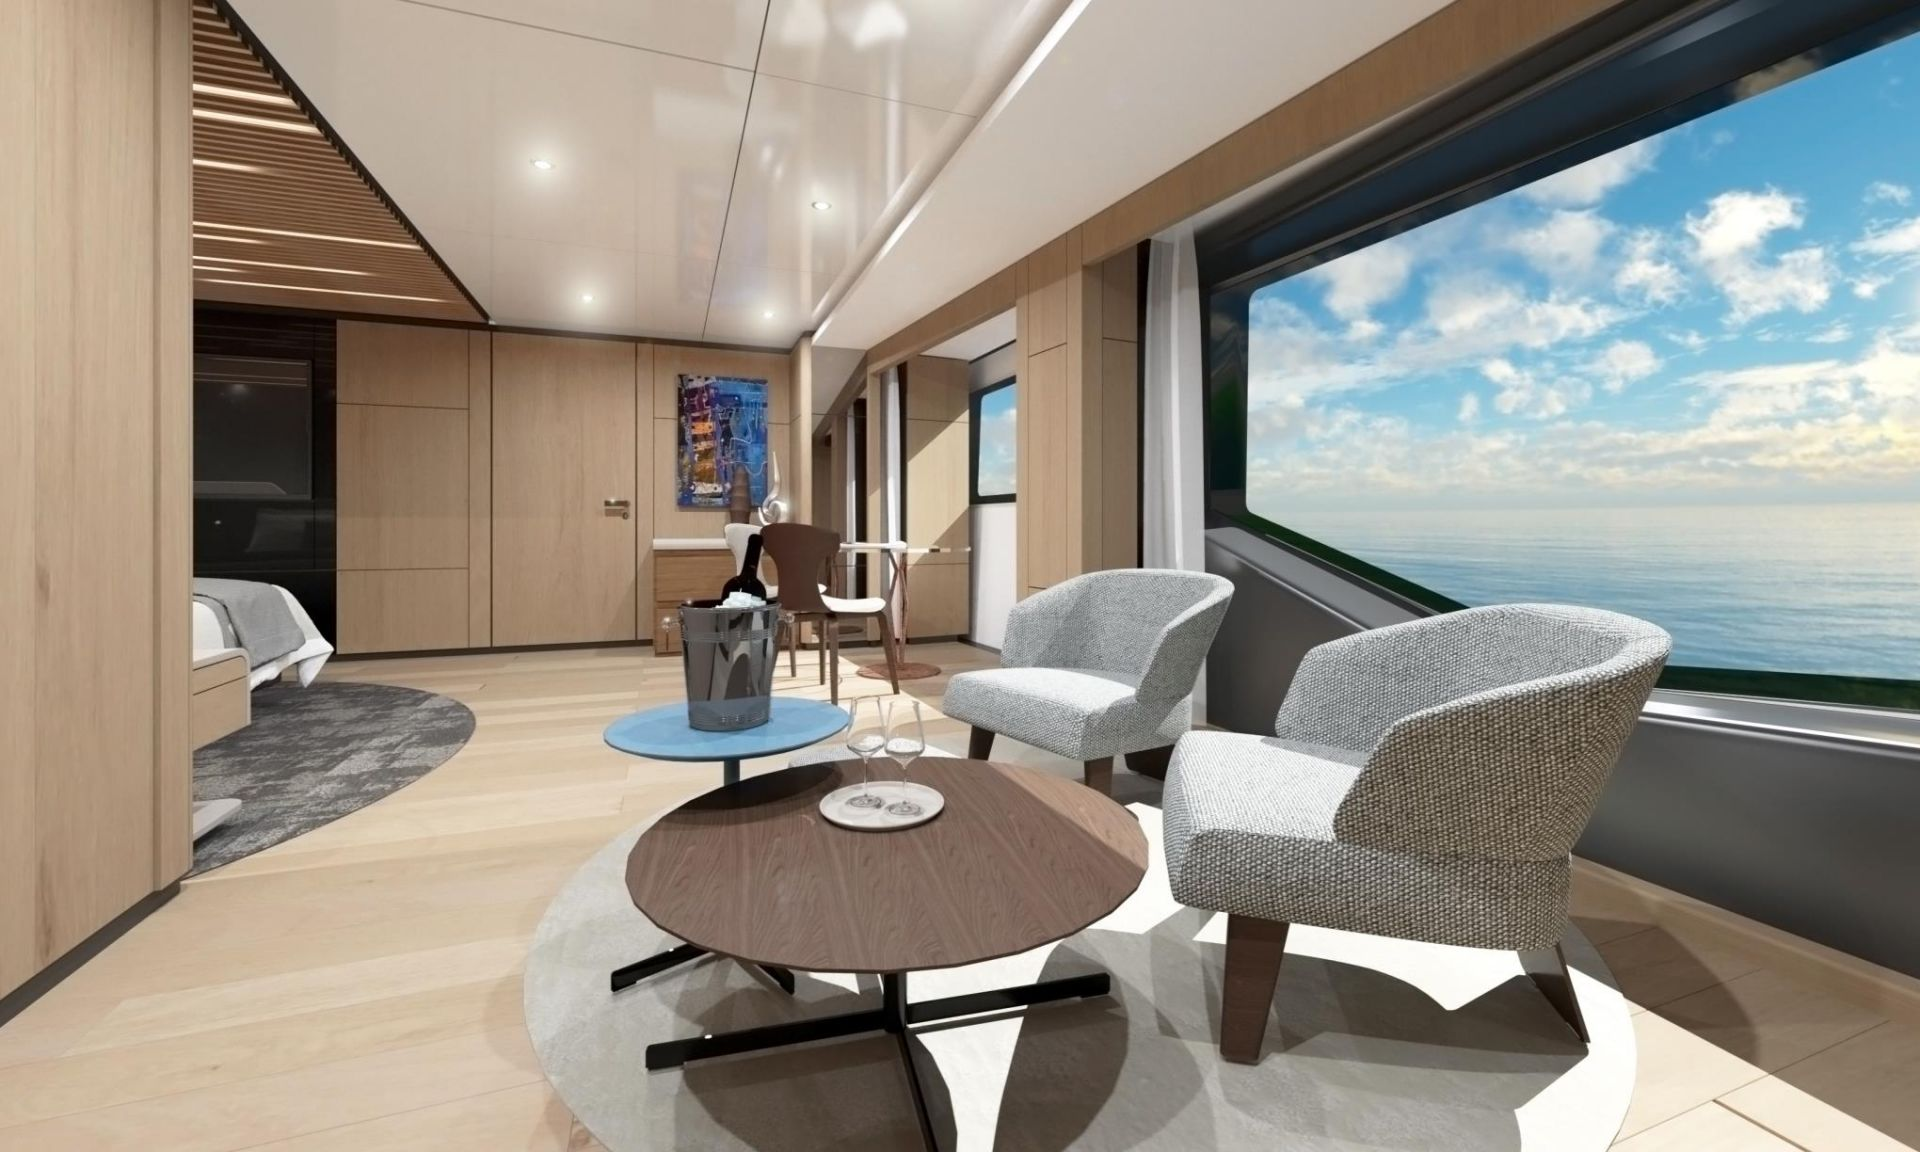 M/Y WIDER 170 yacht for sale bedroom seating